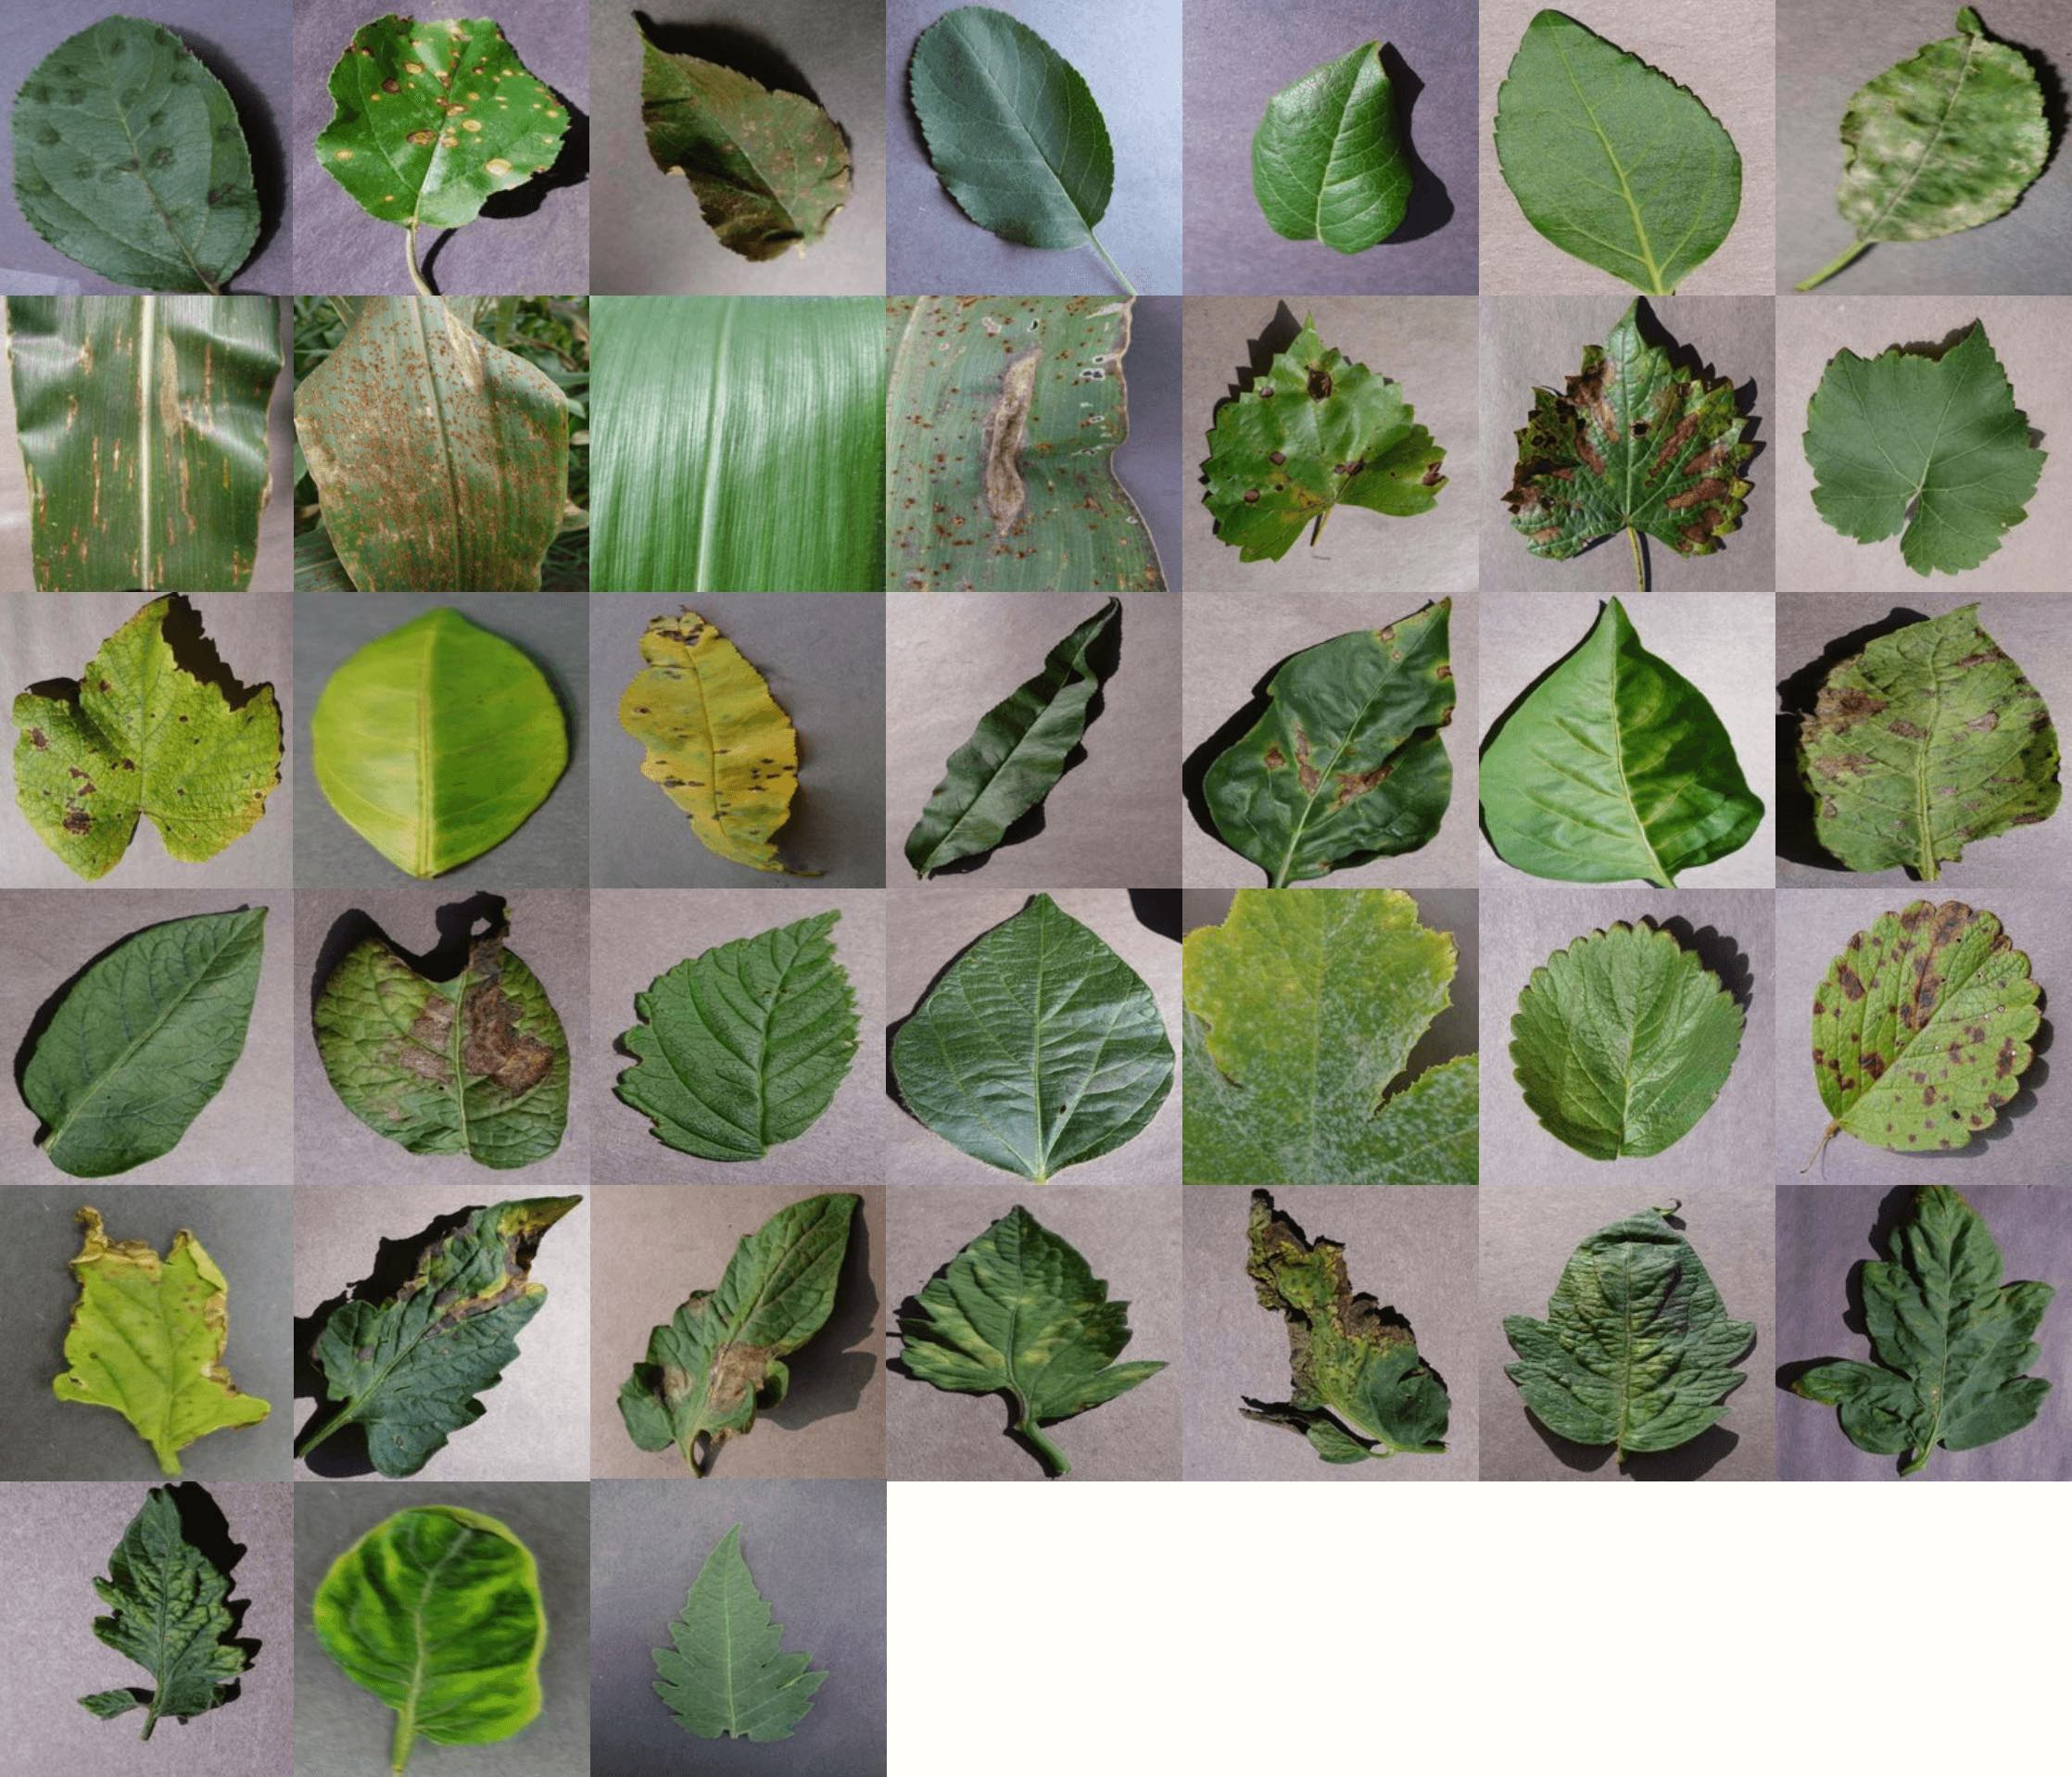 38 classes of crop-disease pairs in the dataset